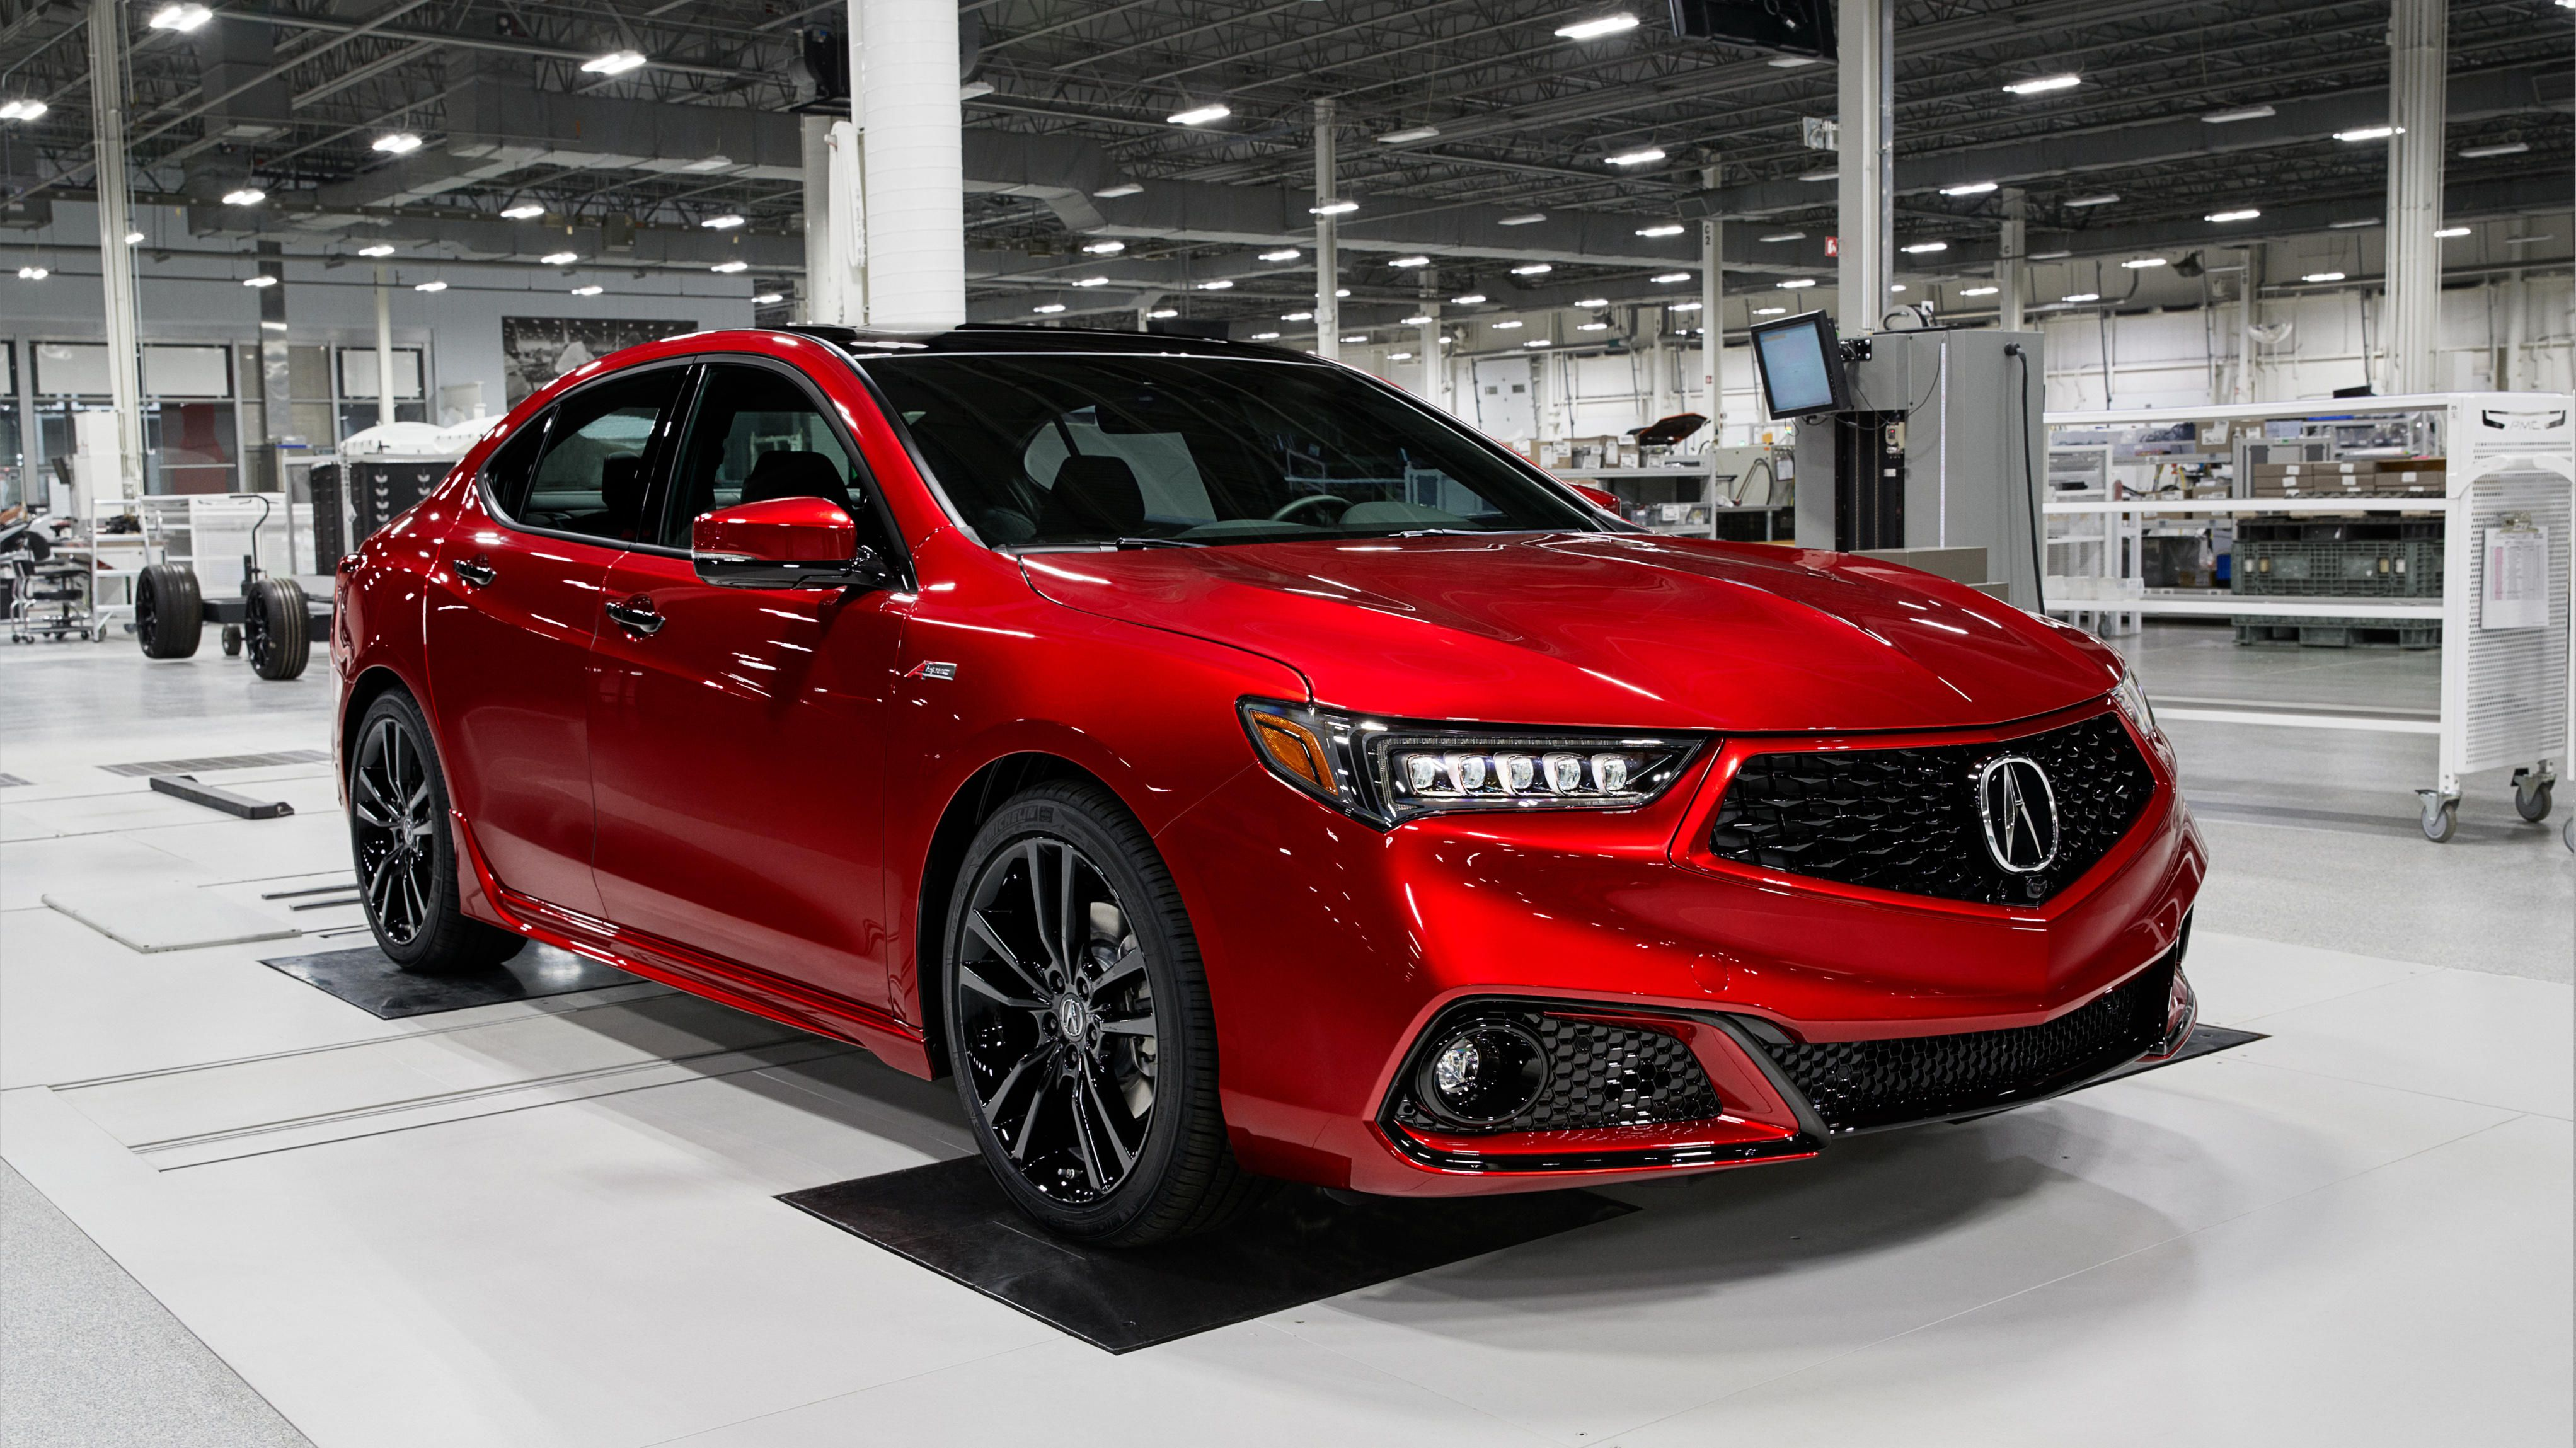 87 Gallery of 2020 Acura Tlx Type S Price Prices with 2020 Acura Tlx Type S Price